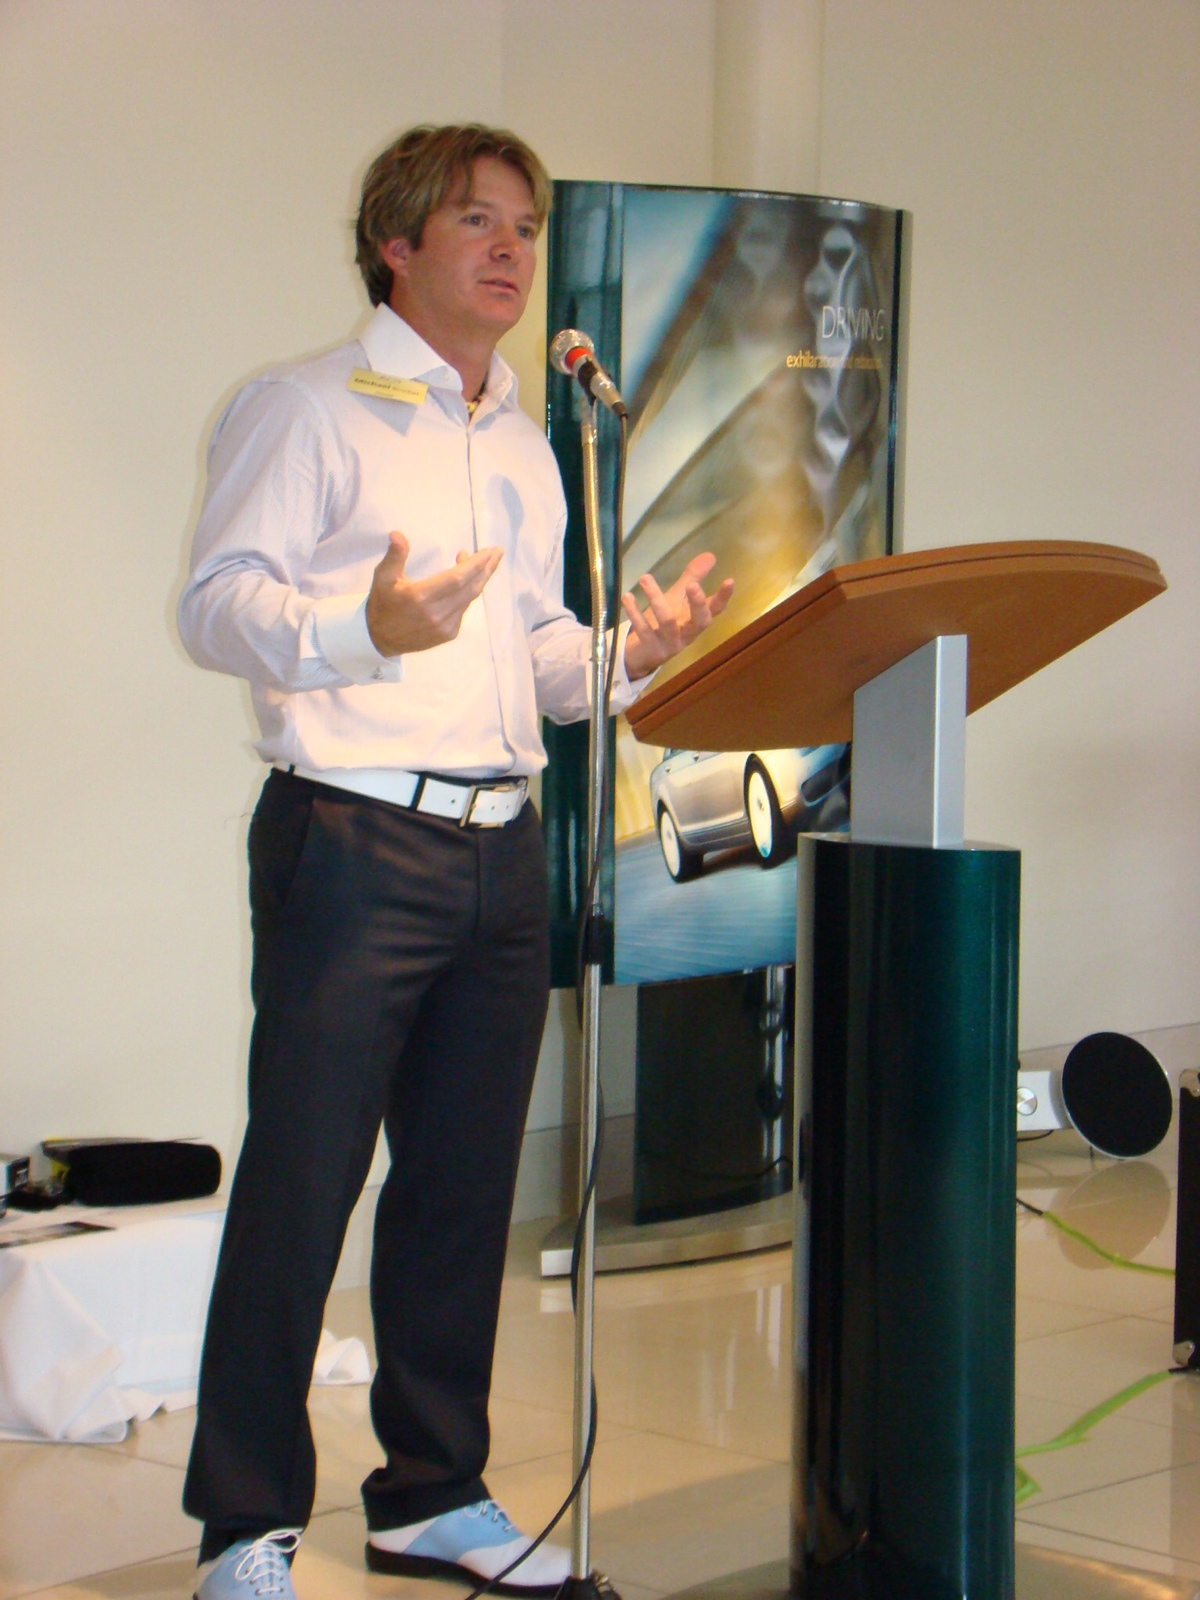 Bruchet speaking to a group of executives at the Mercedes Corporate Event in Calgary, AB.